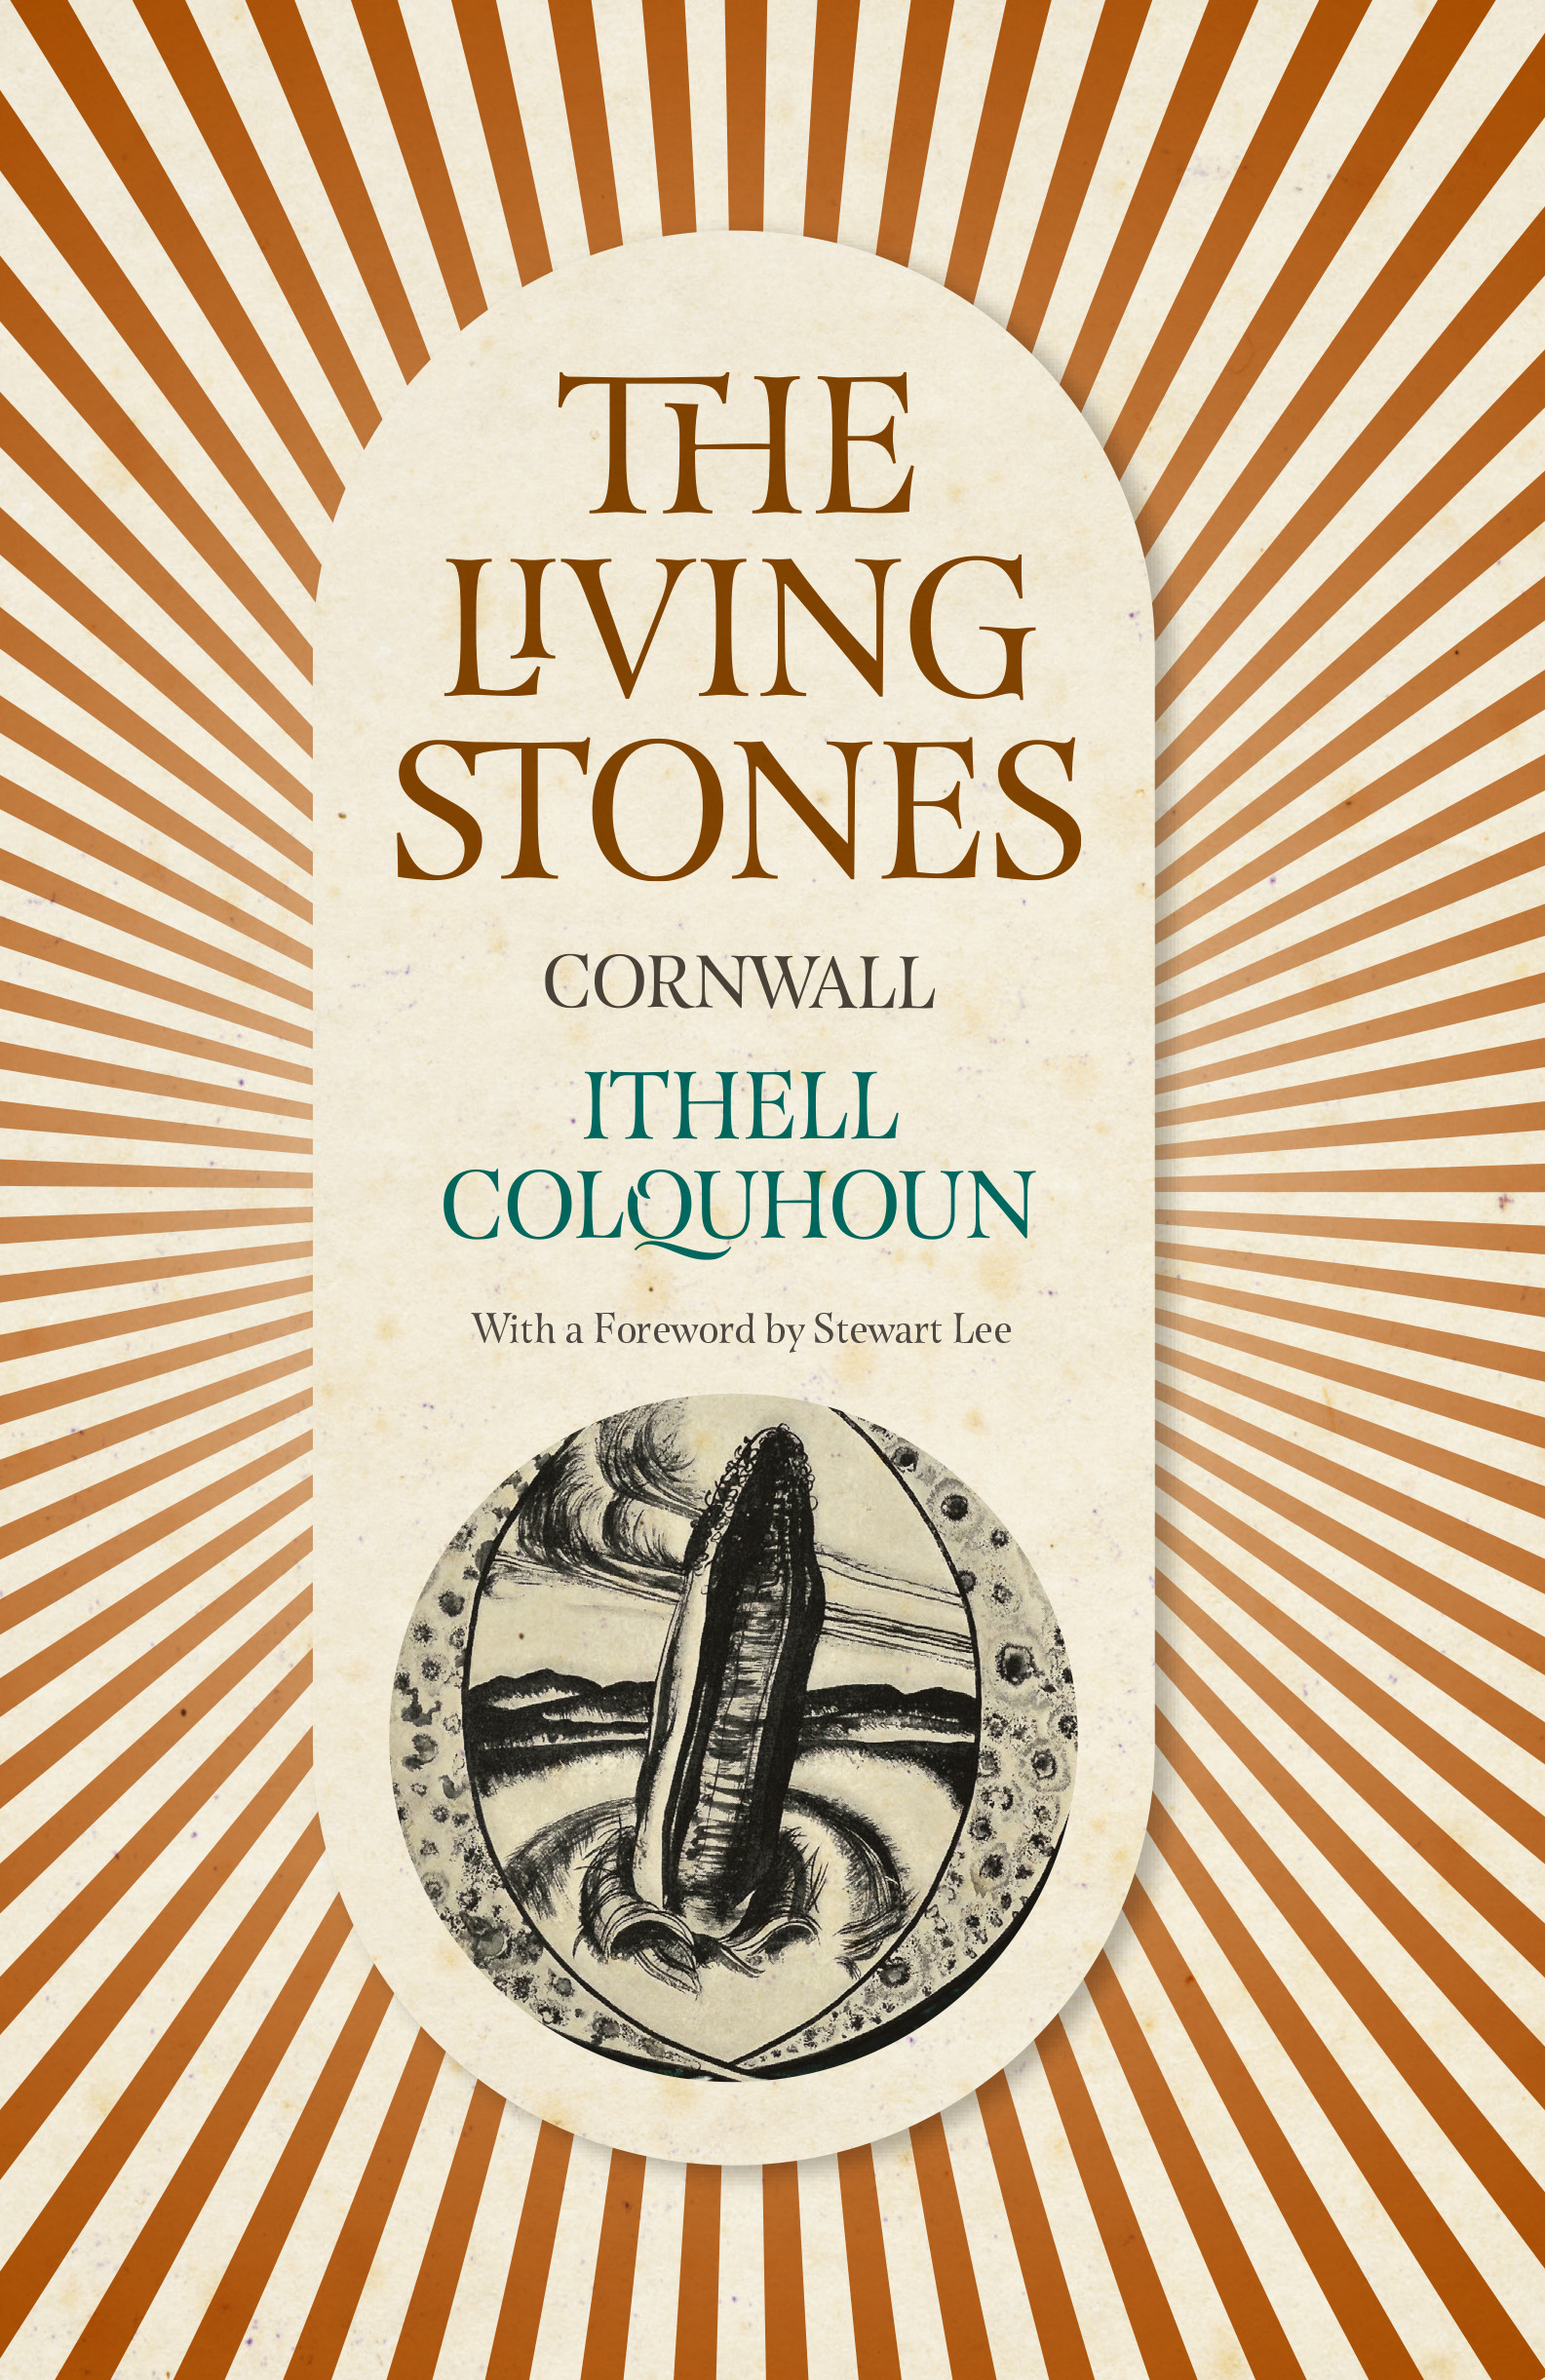 The Living Stones: Cornwall